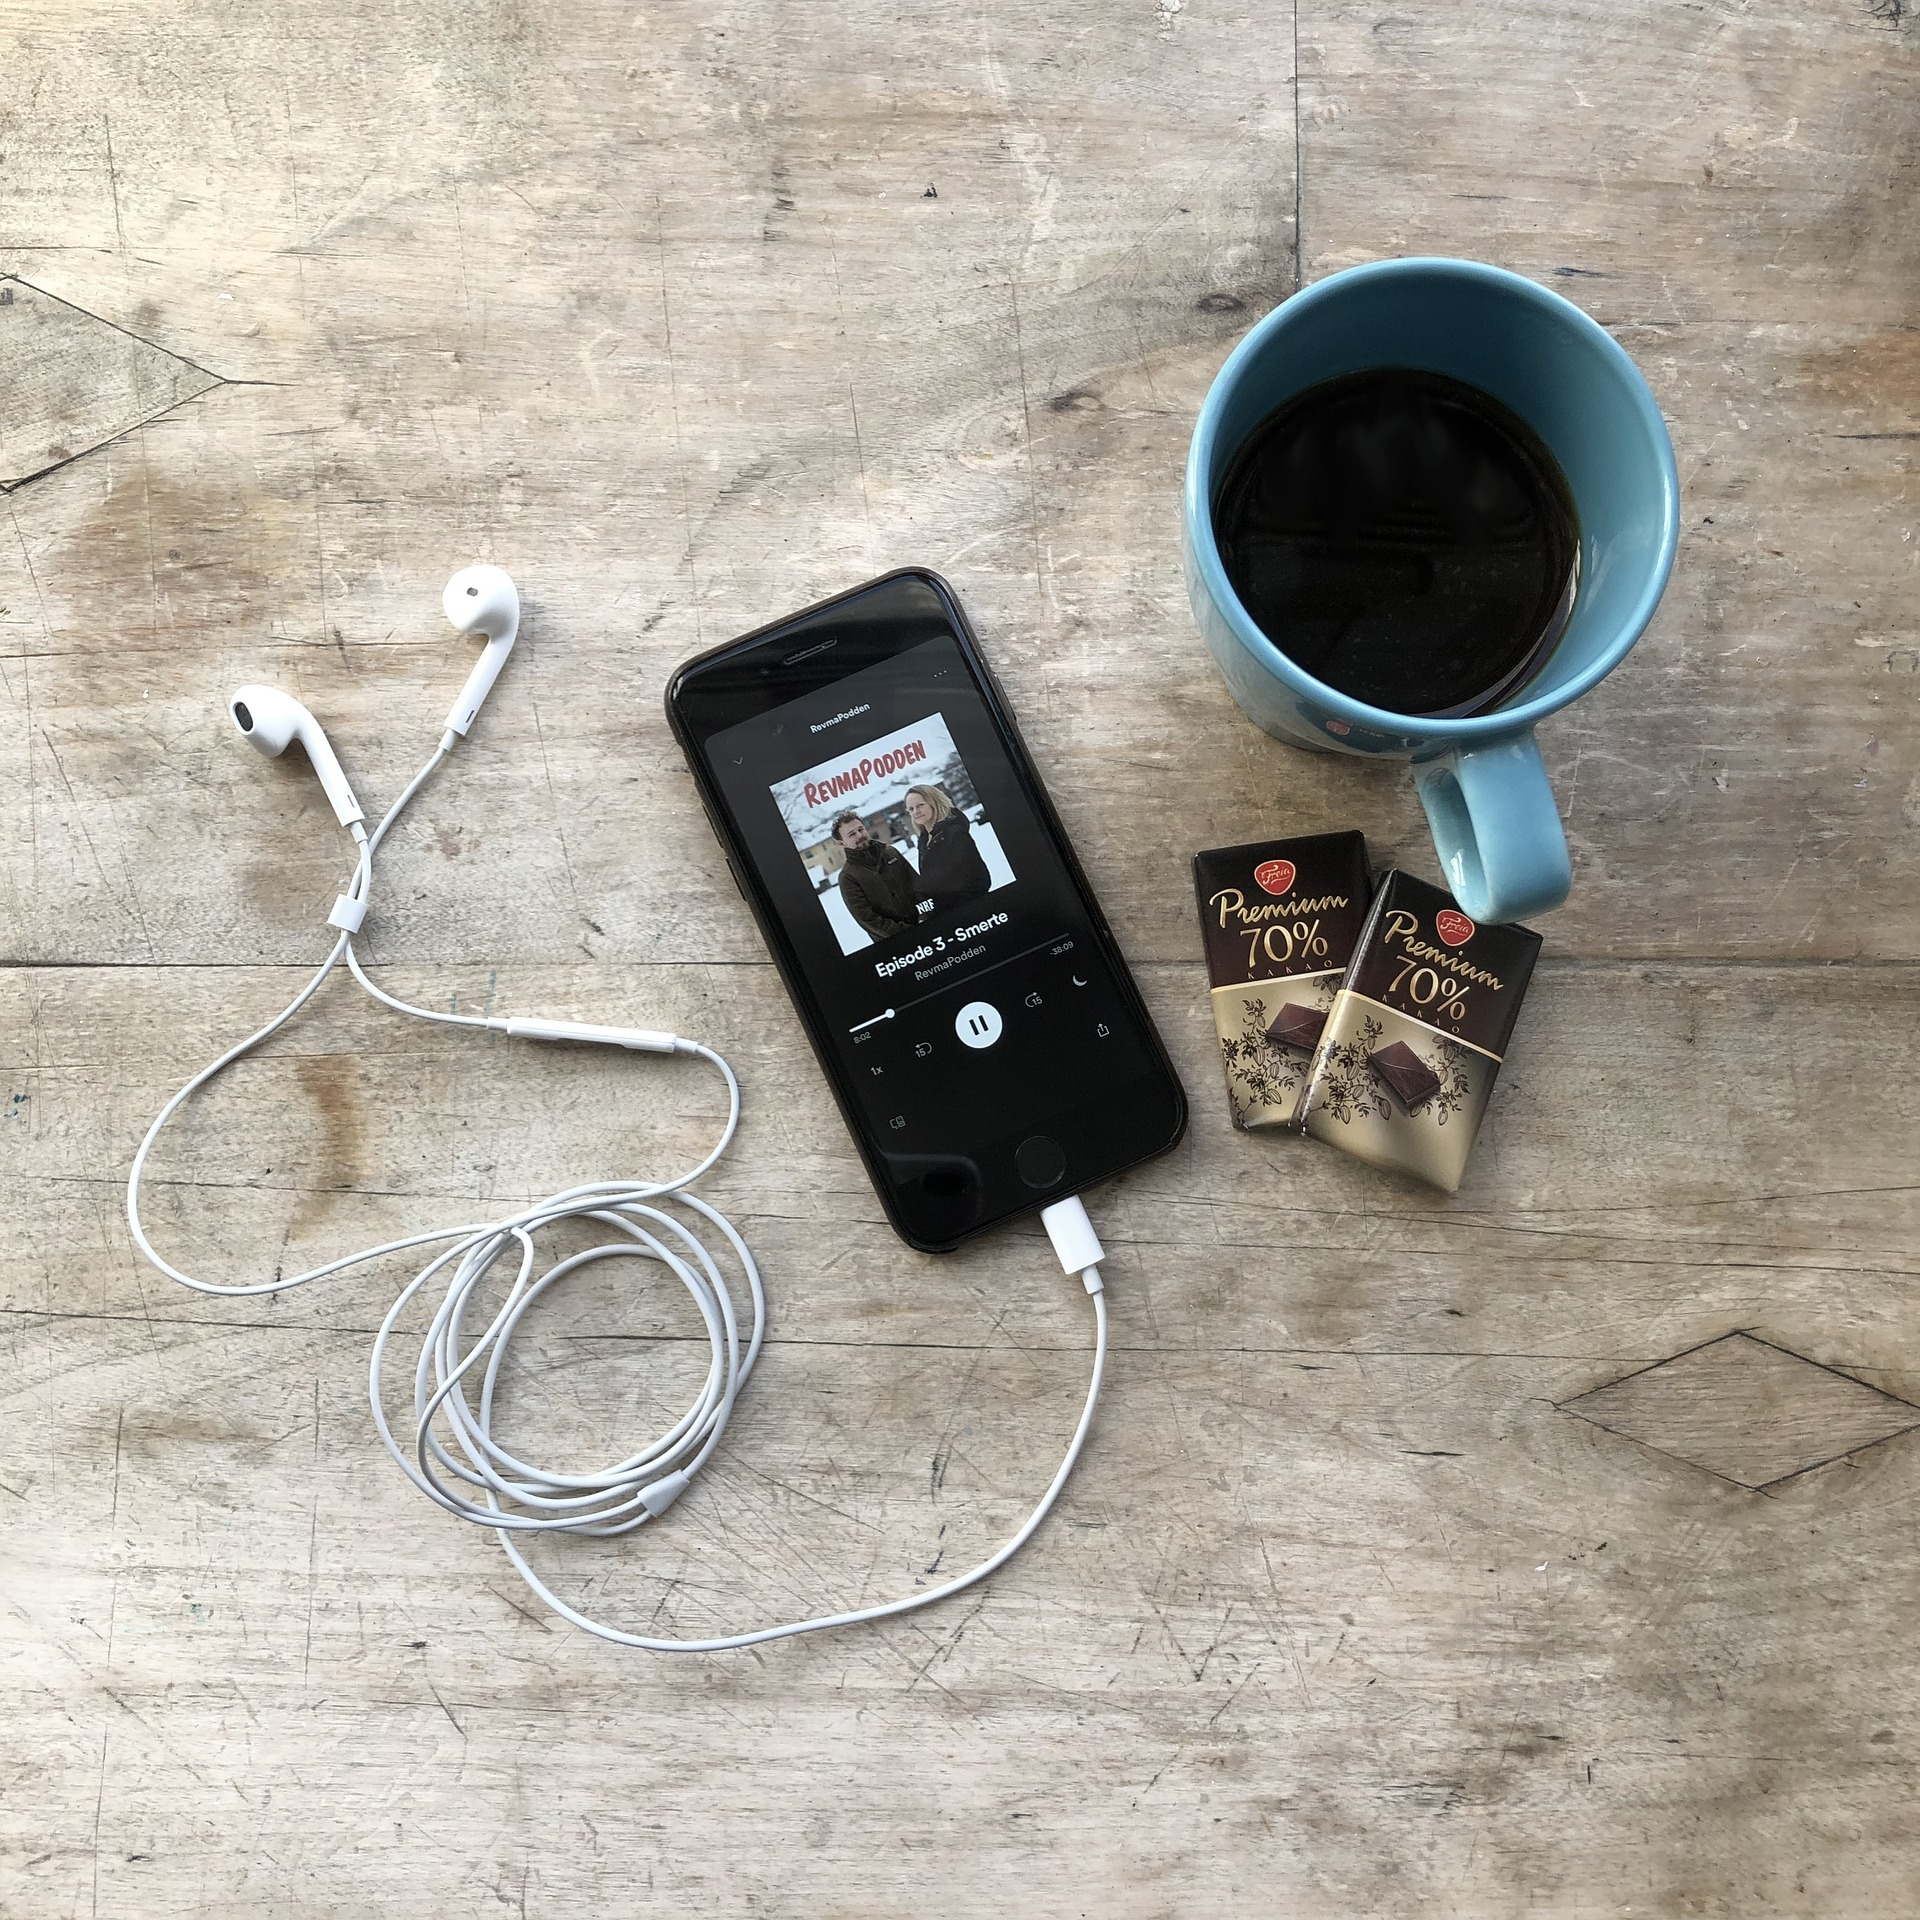 Phone with headphones, chocolate and a blue cup